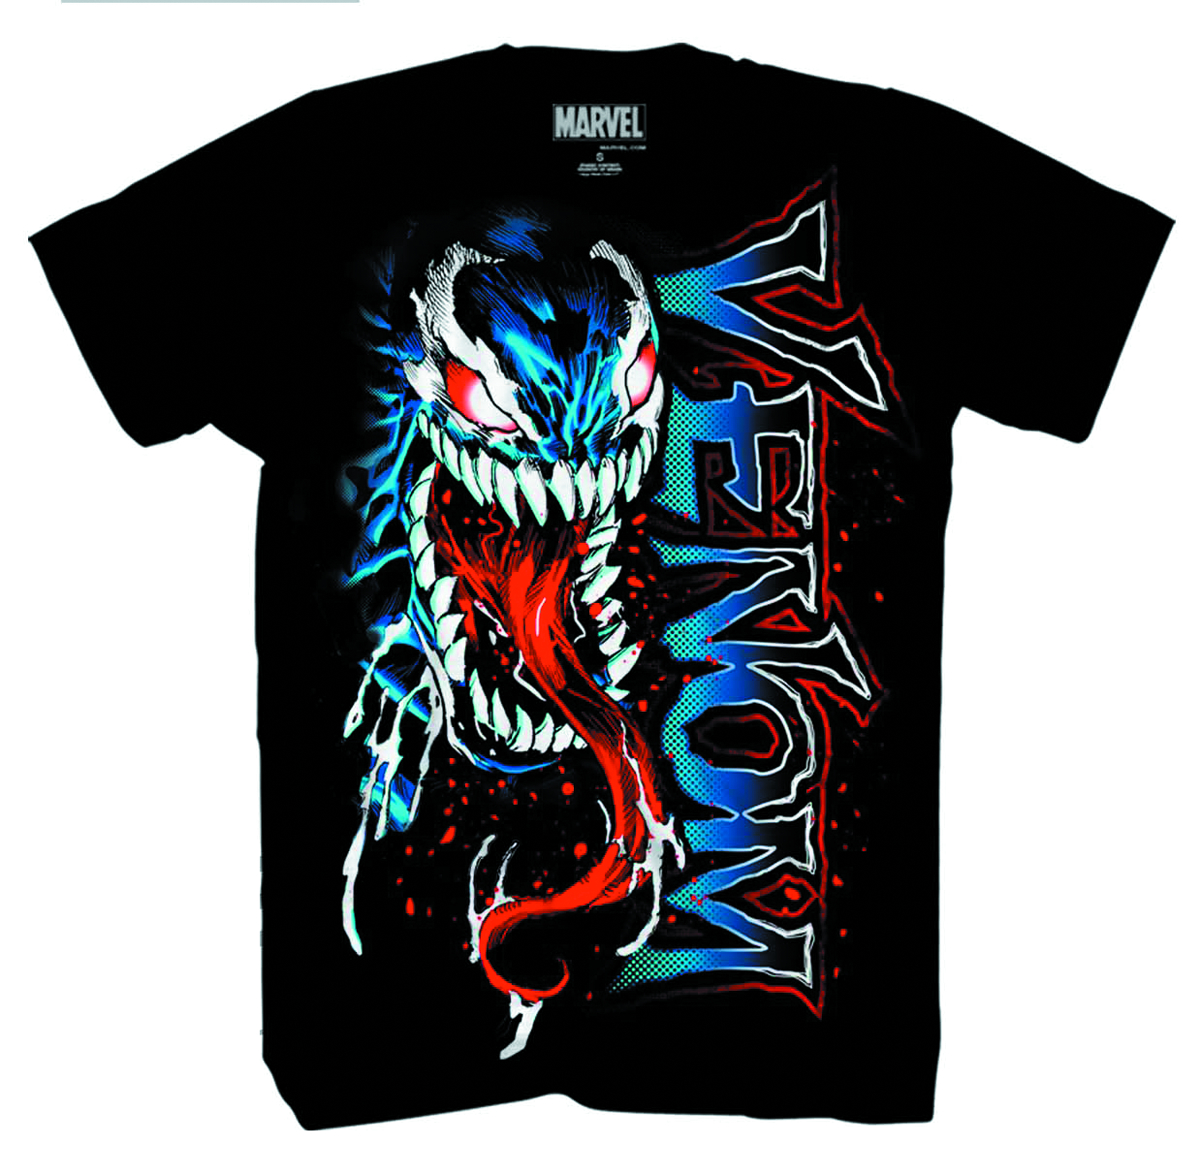 VENOM FACE OF BROCK PX BLK T/S XL